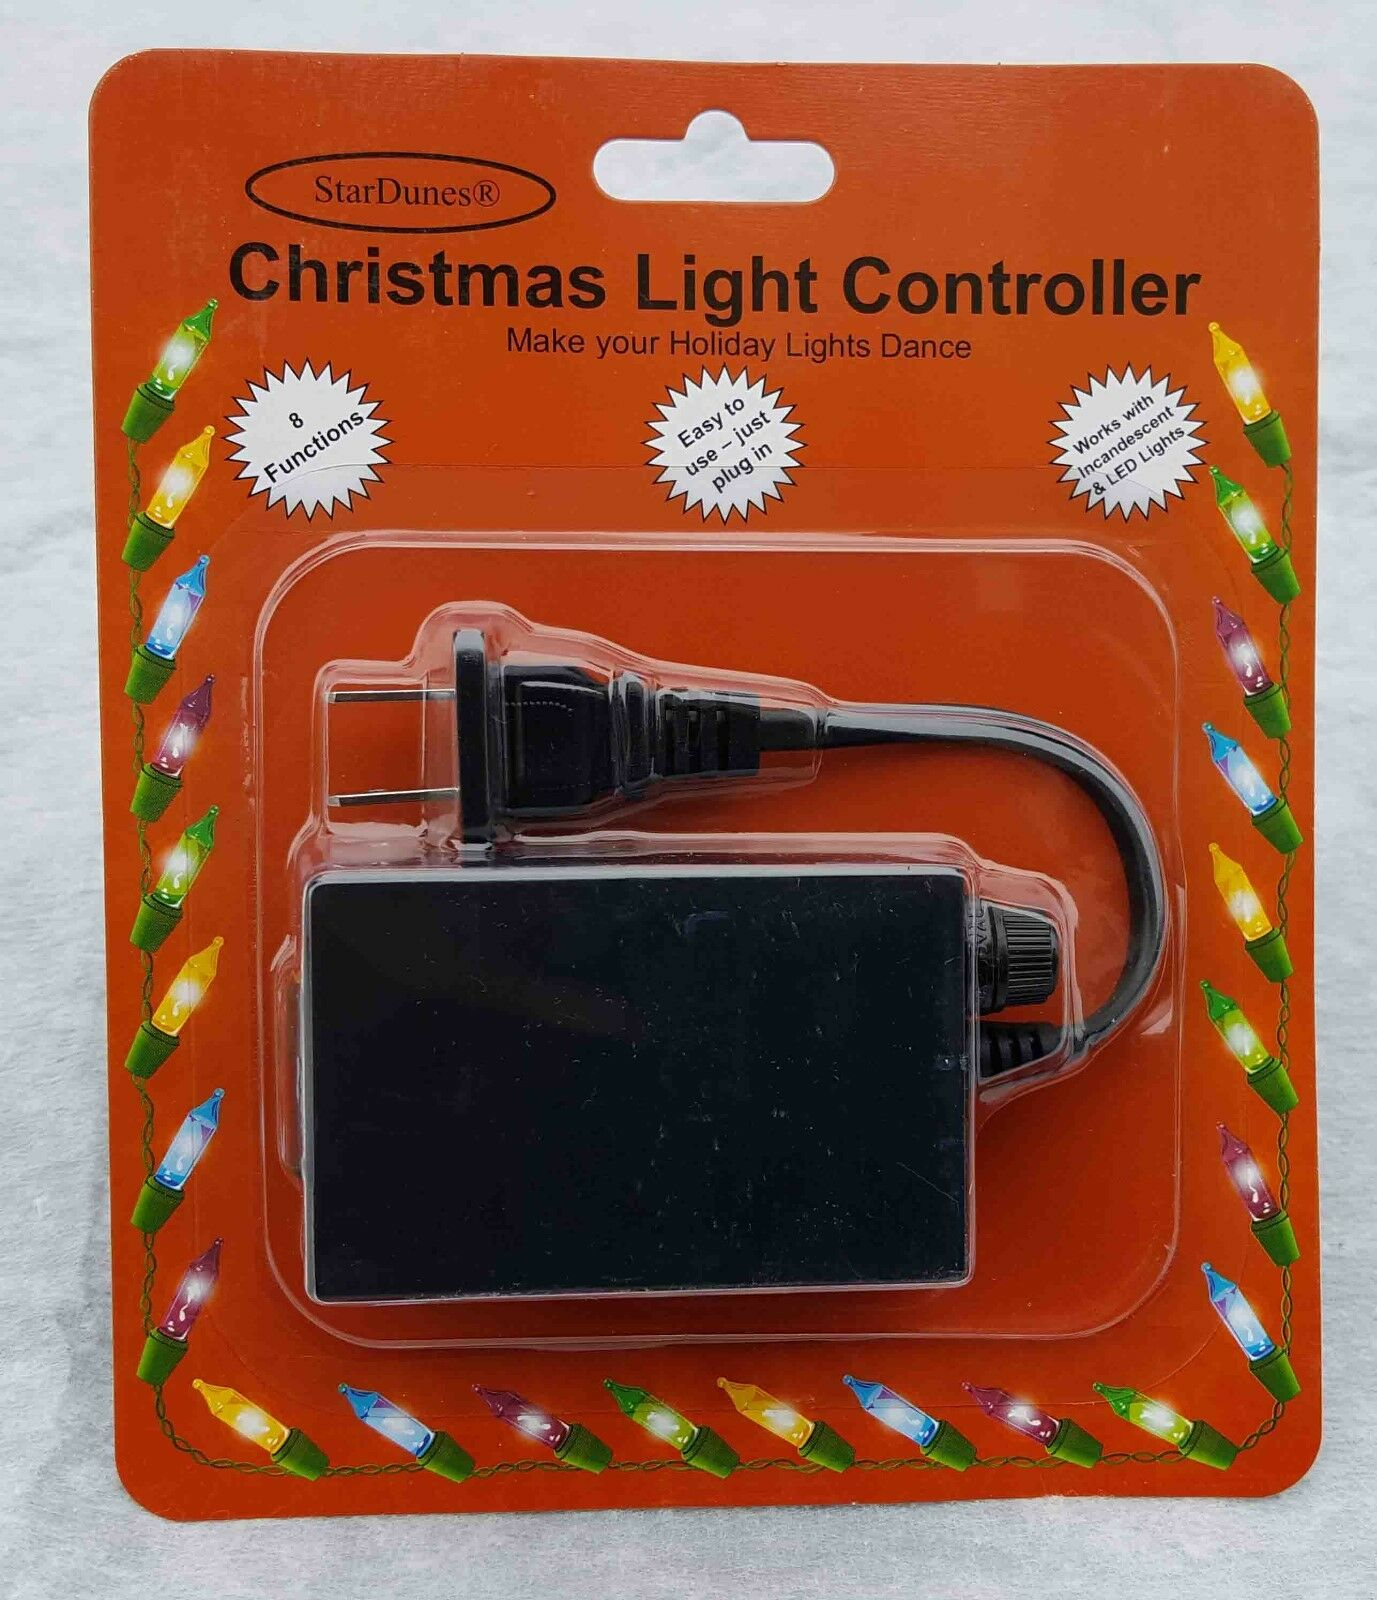 christmas light controller christmas light controller cad 38 73 picclick ca 9815